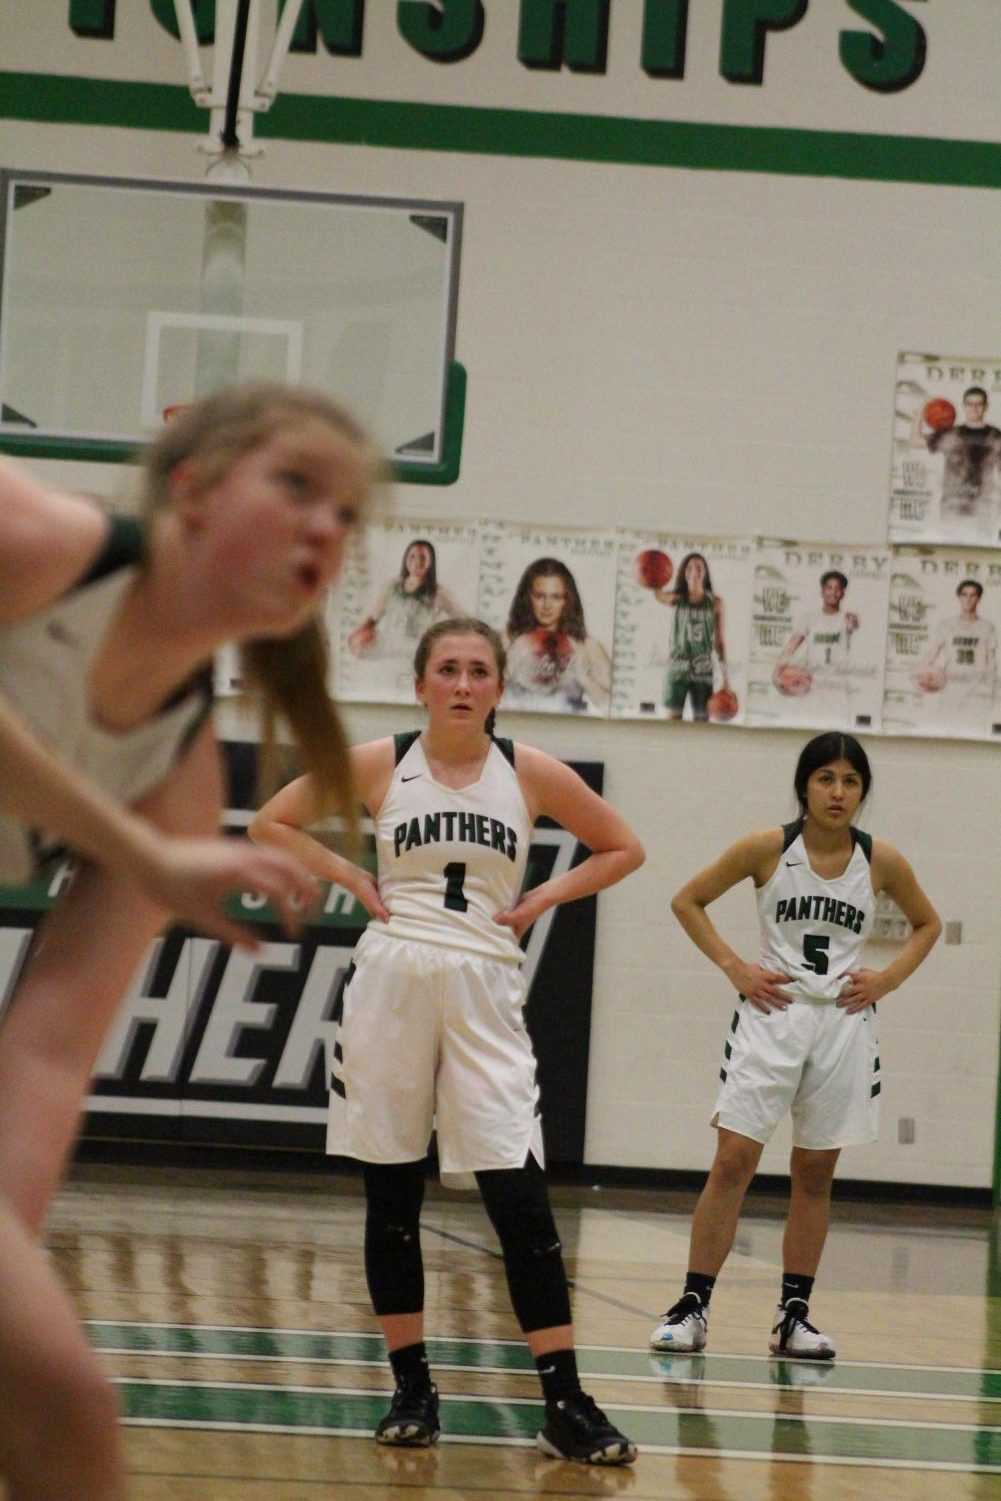 Freshmen+Basketball+Girls+Derby+Vs.+Campus+%28Photos+By+Alondra+Lopez%29